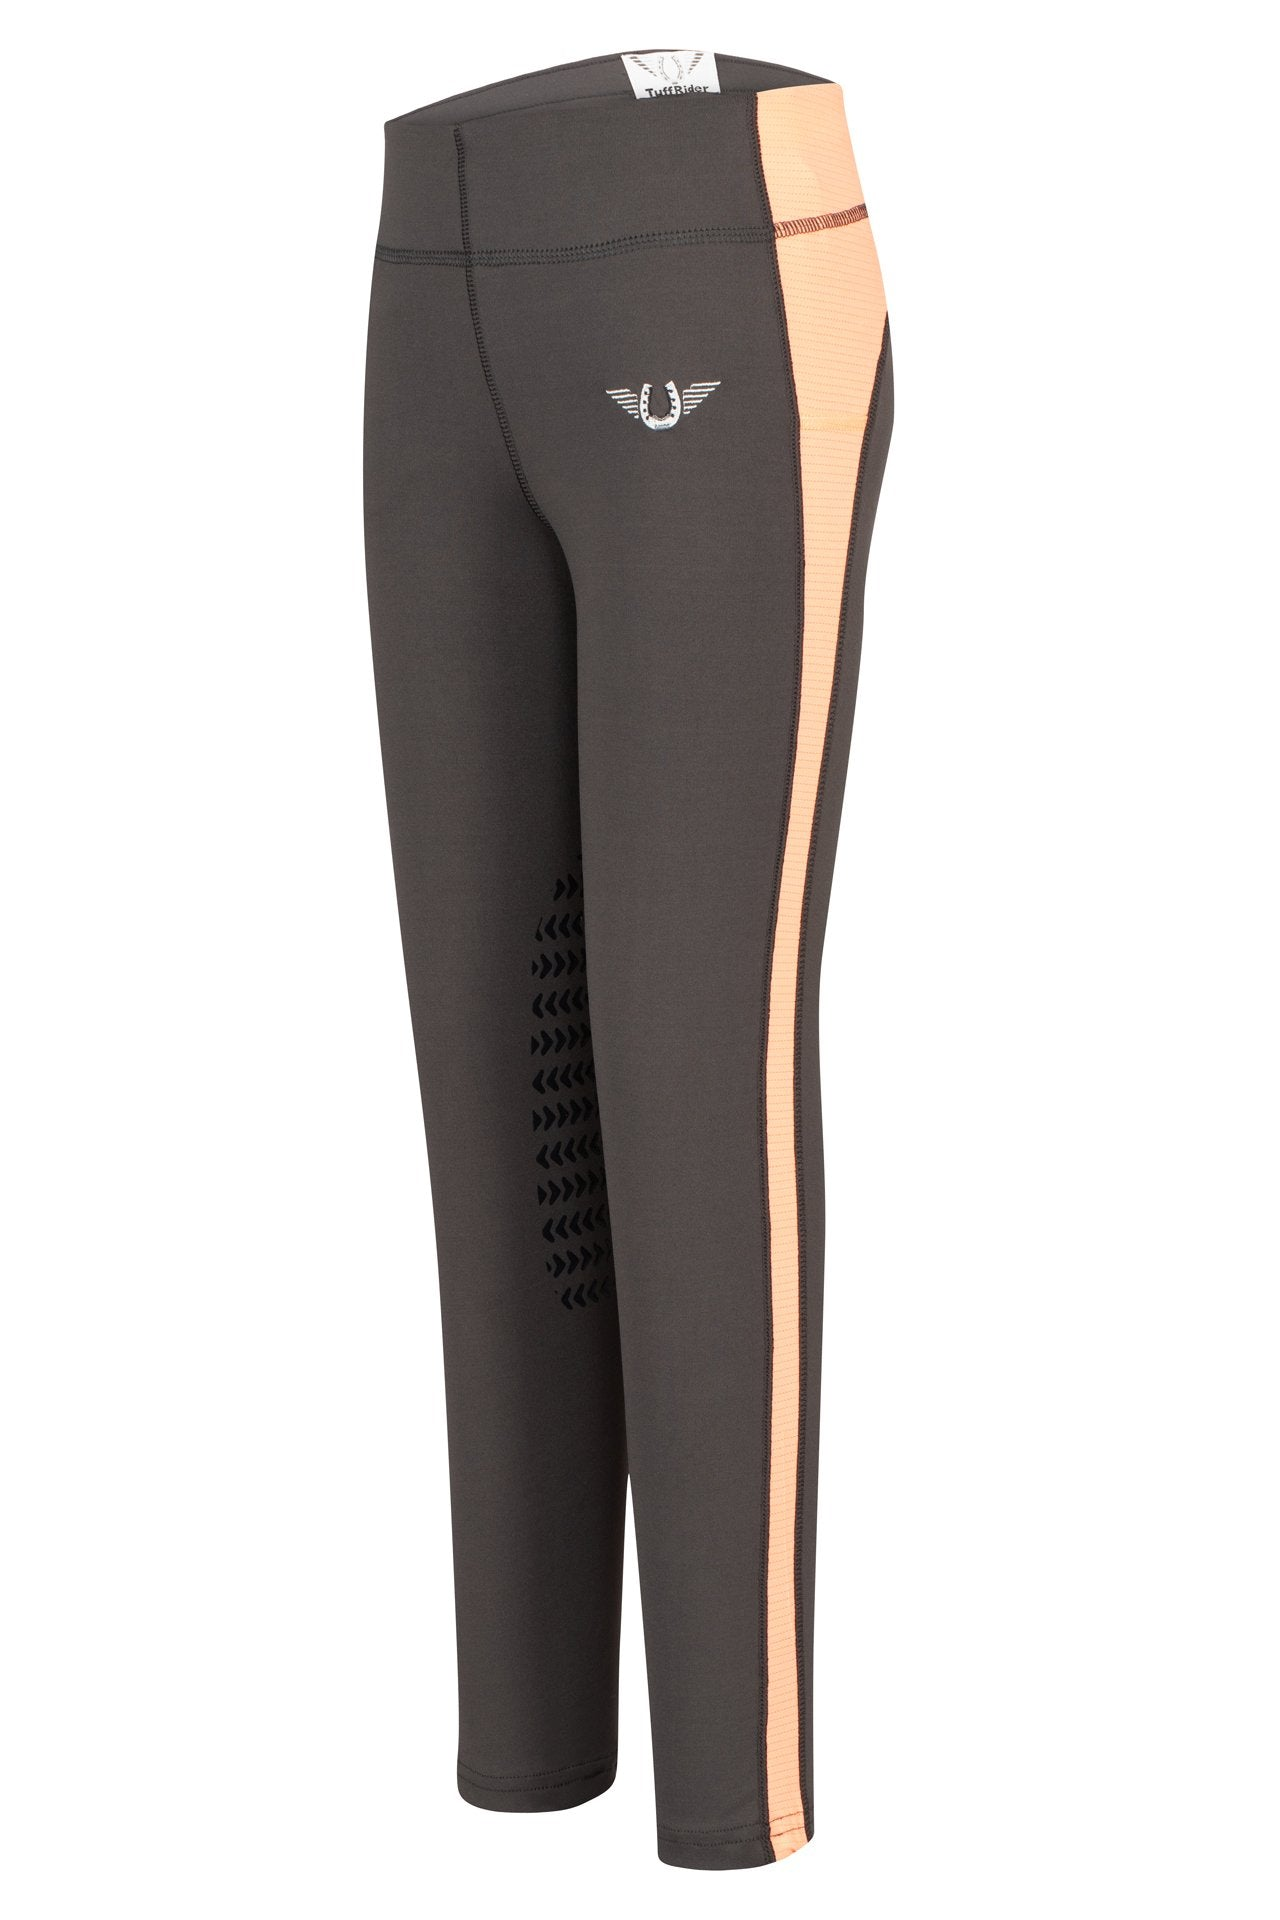 Children's Ventilated Schooling Riding Tights - TuffRider - Breeches.com